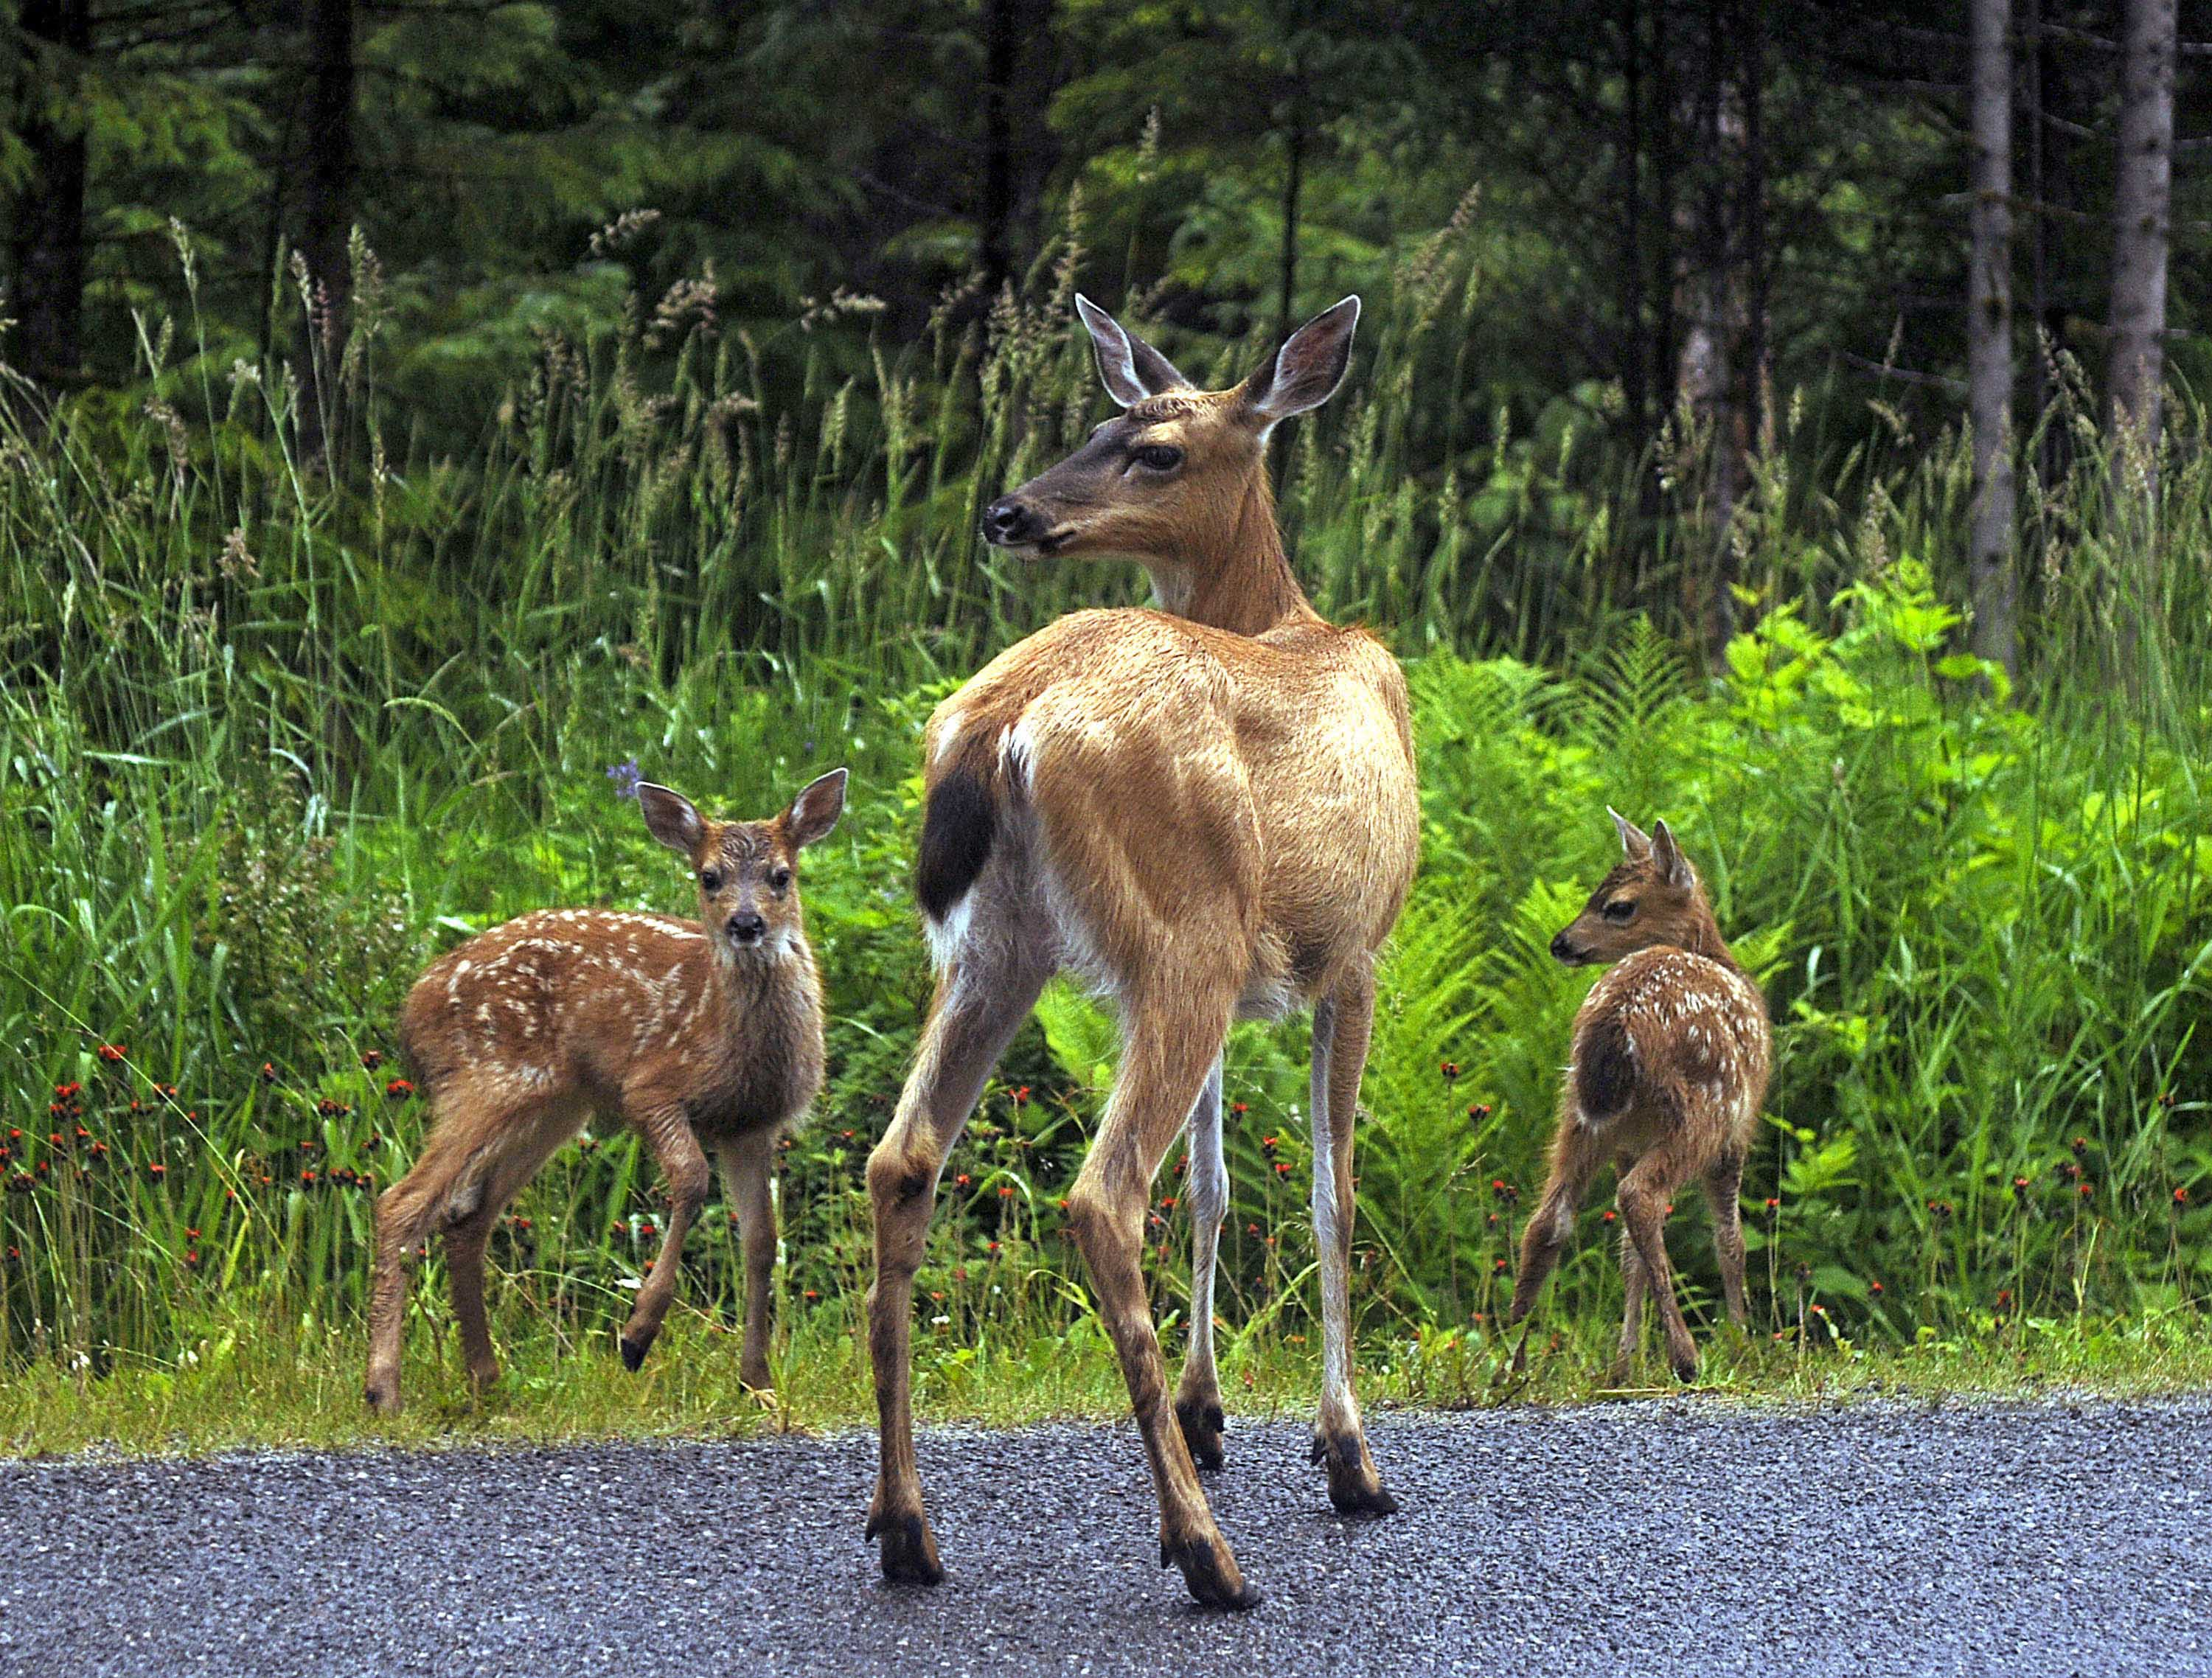 Find the right plant for privacy without attracting deer